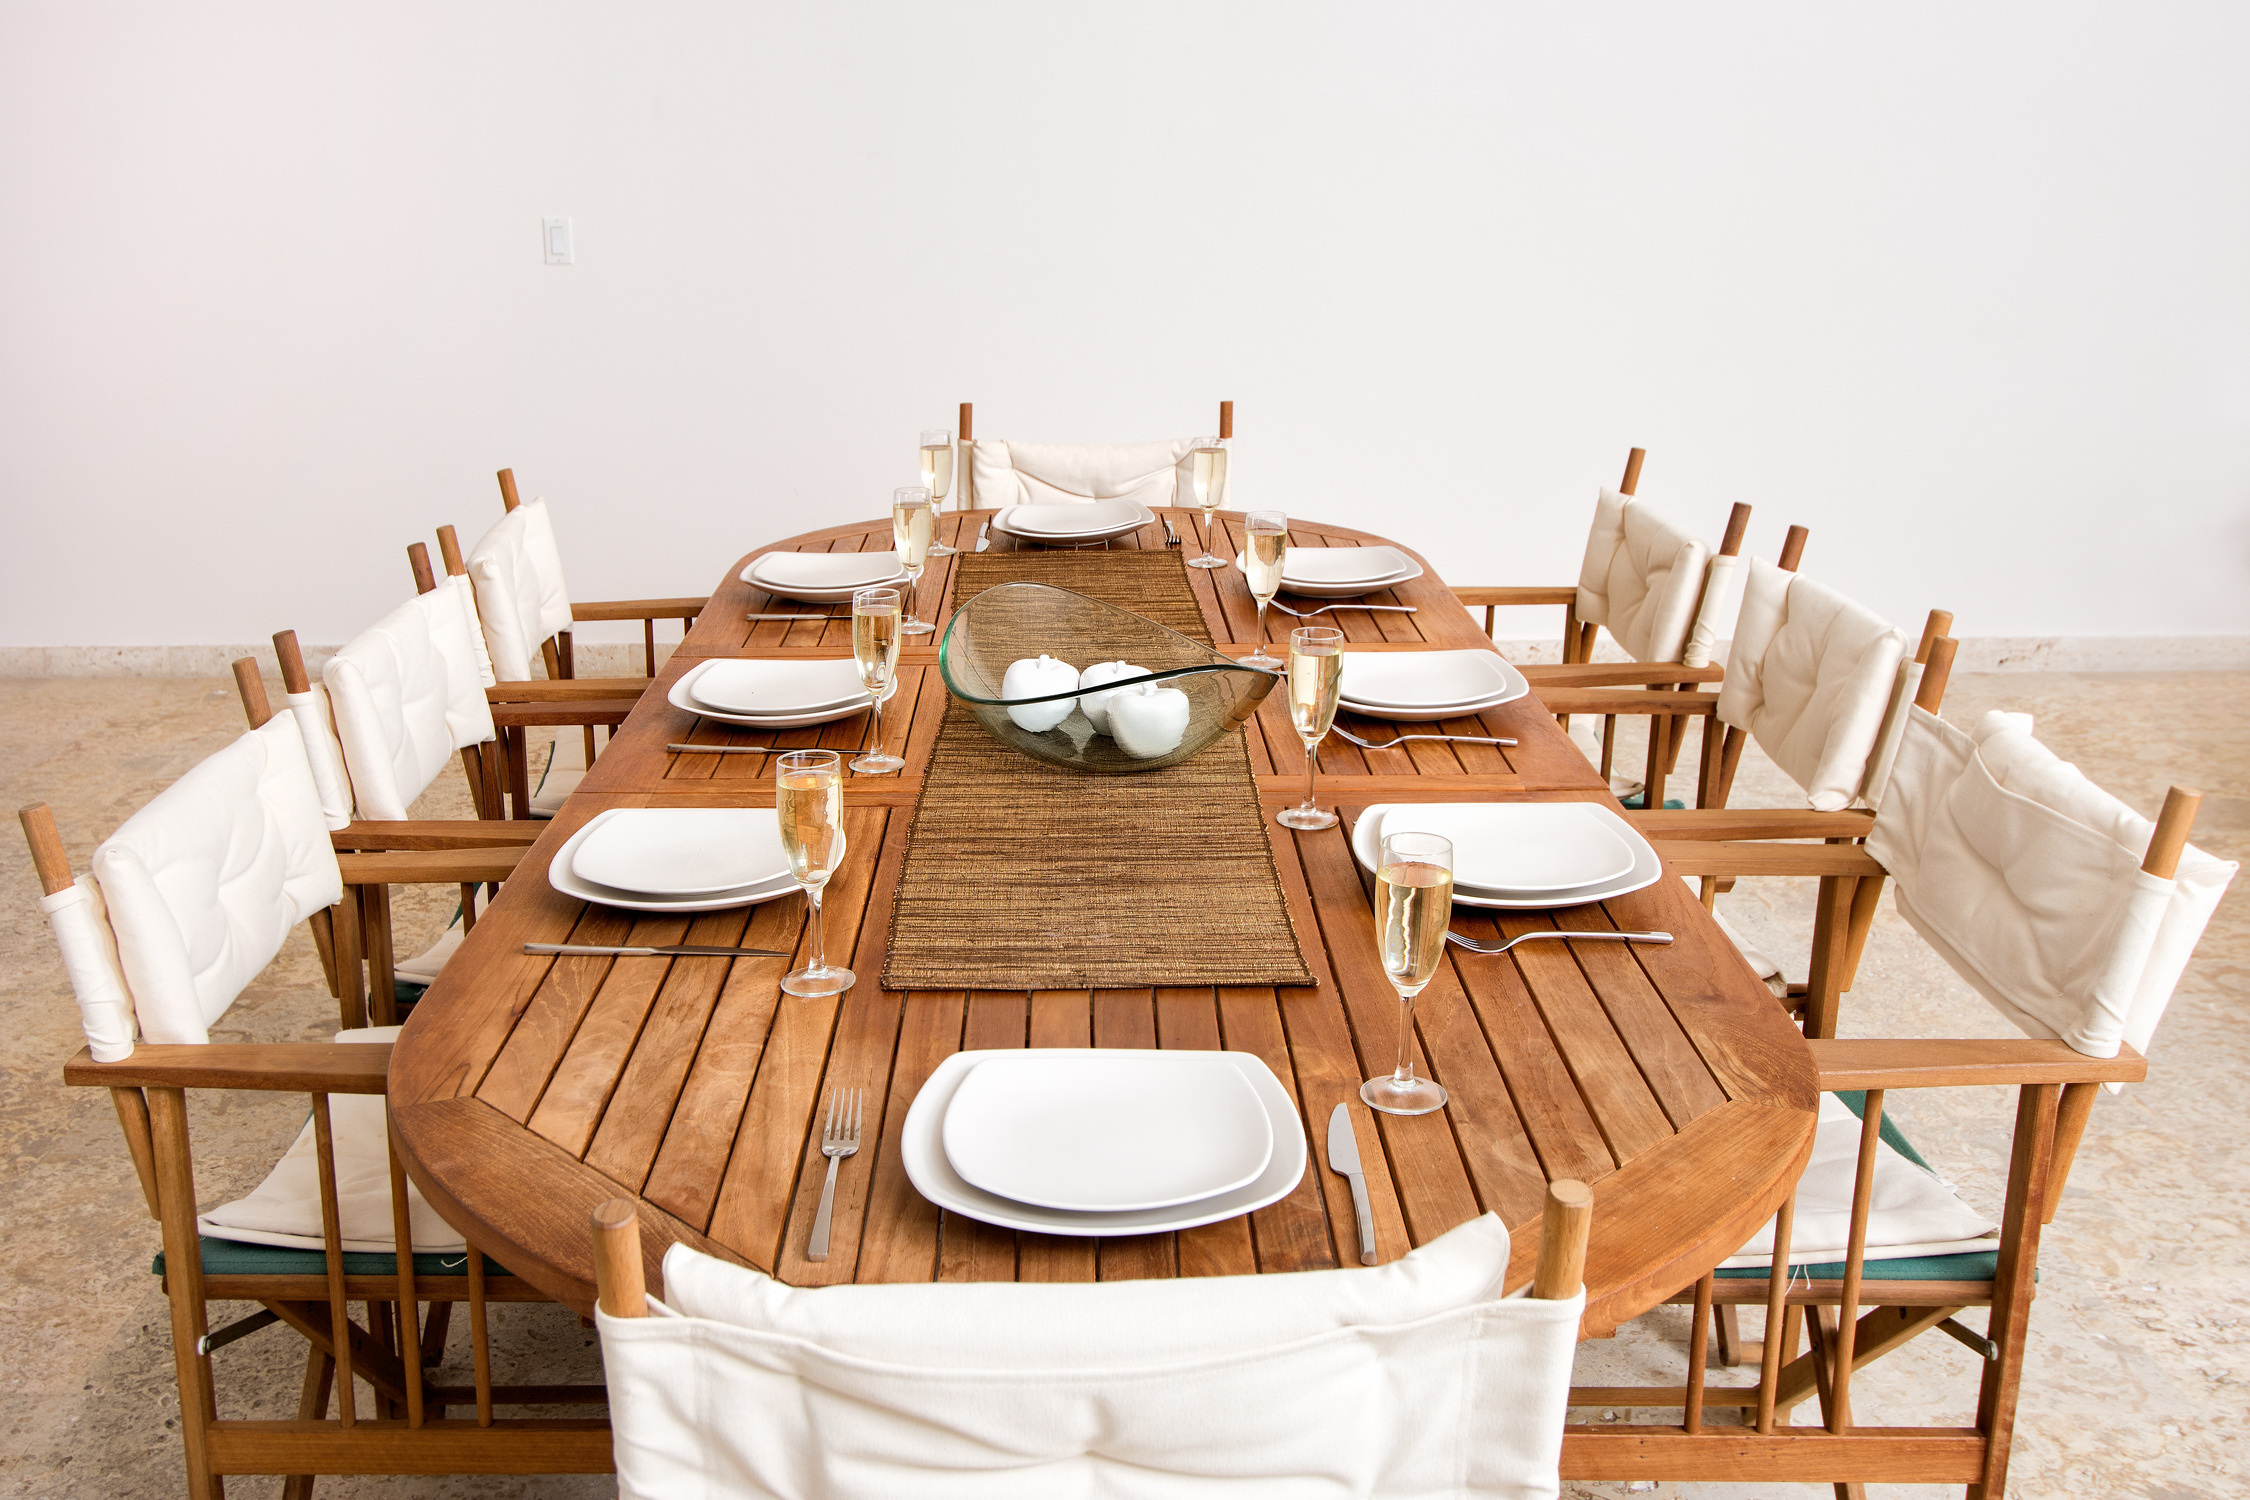 SM404 Dining Table Seats 6-8